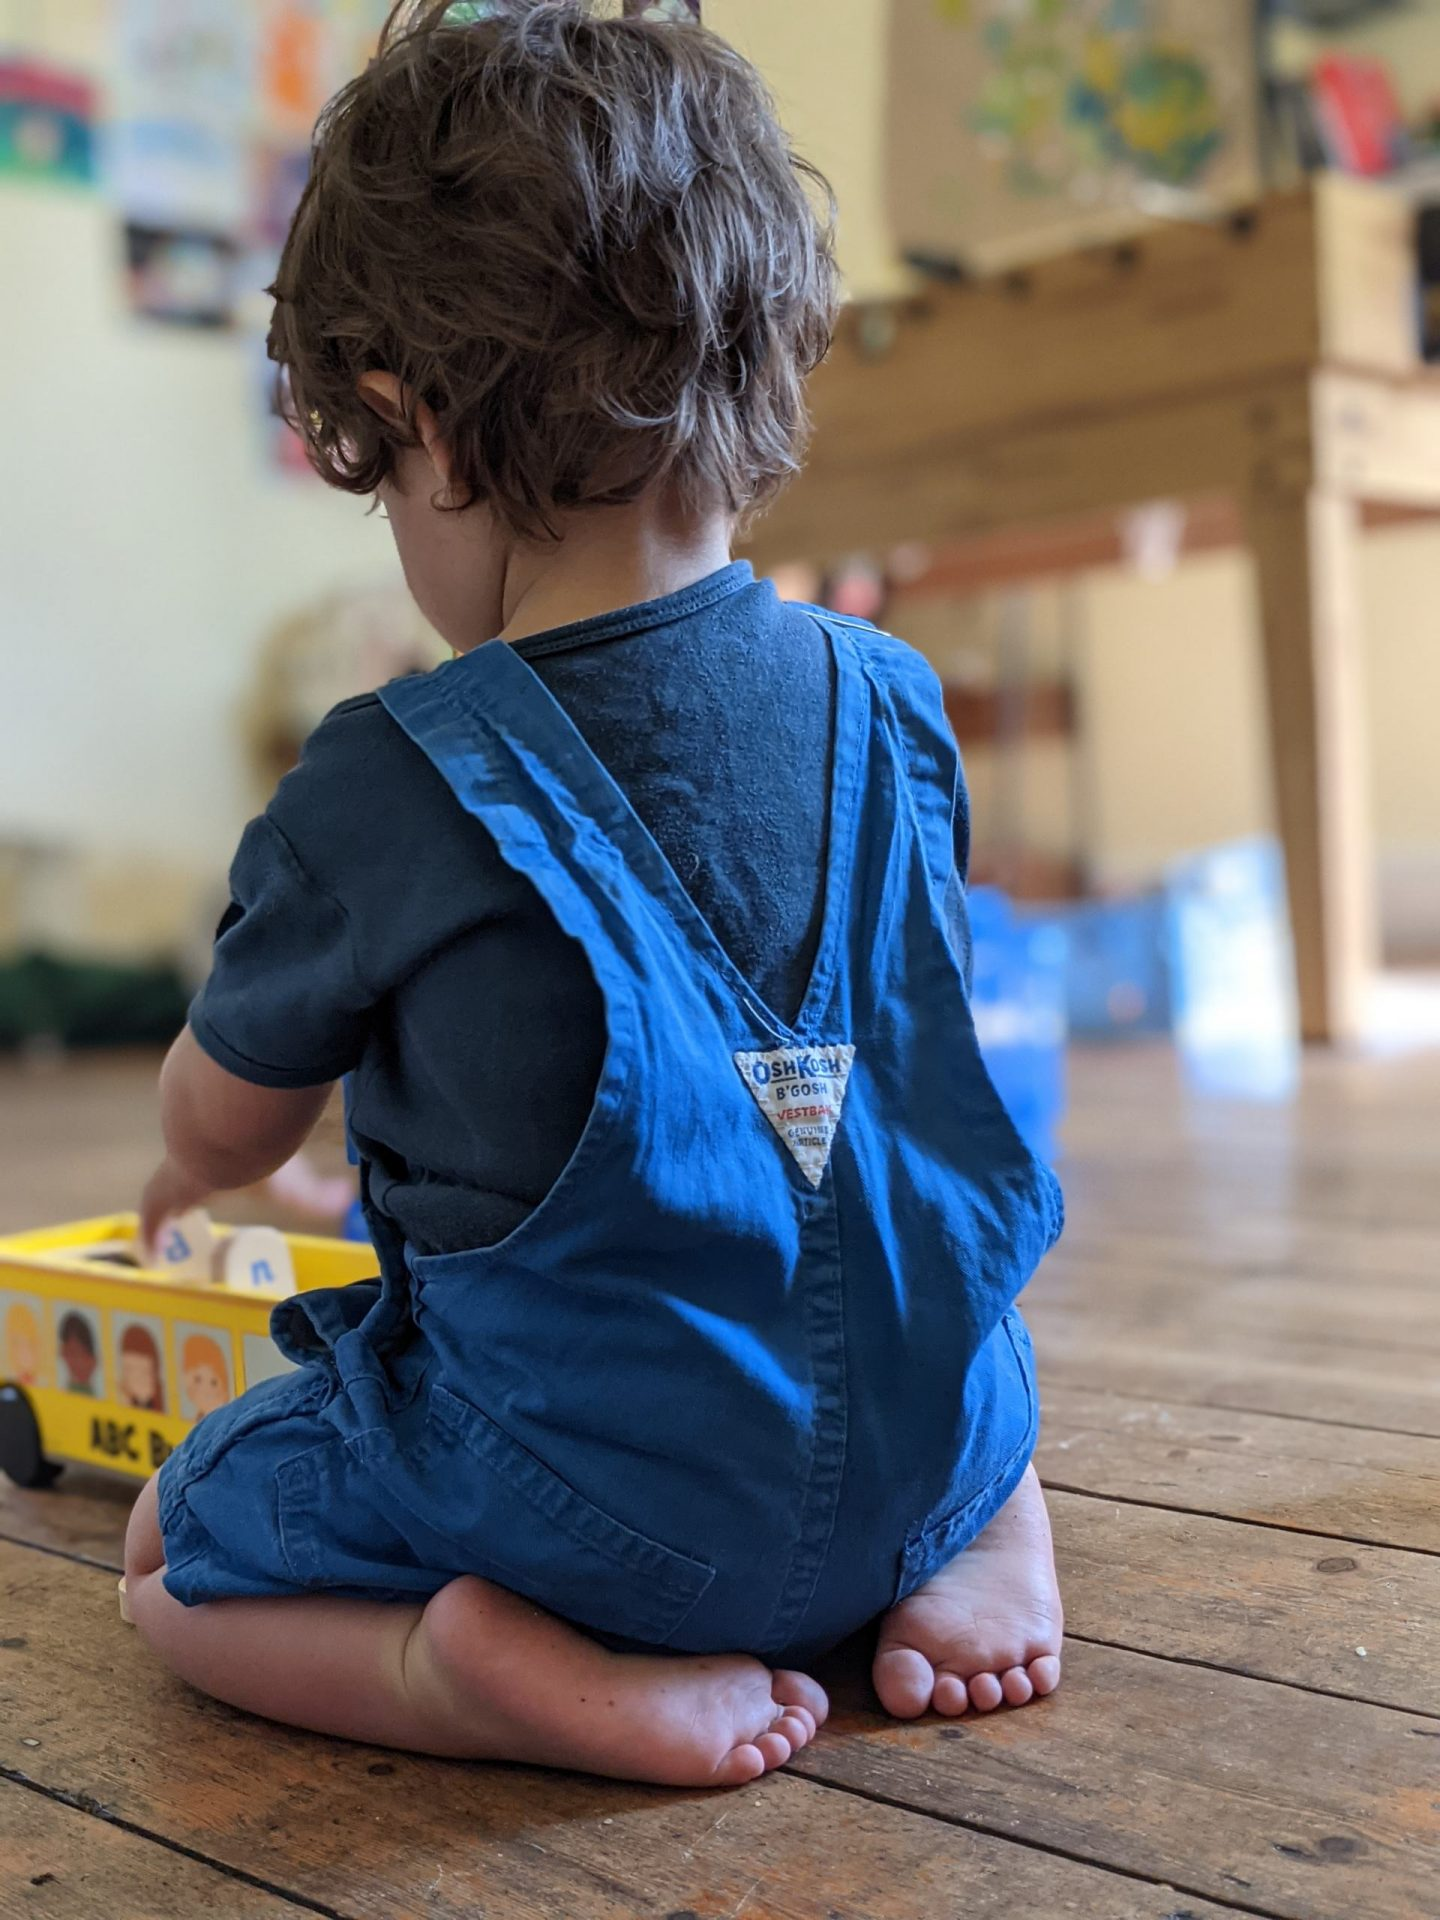 On Lovingly Ignoring Your Child (and Letting Them Play Independently)